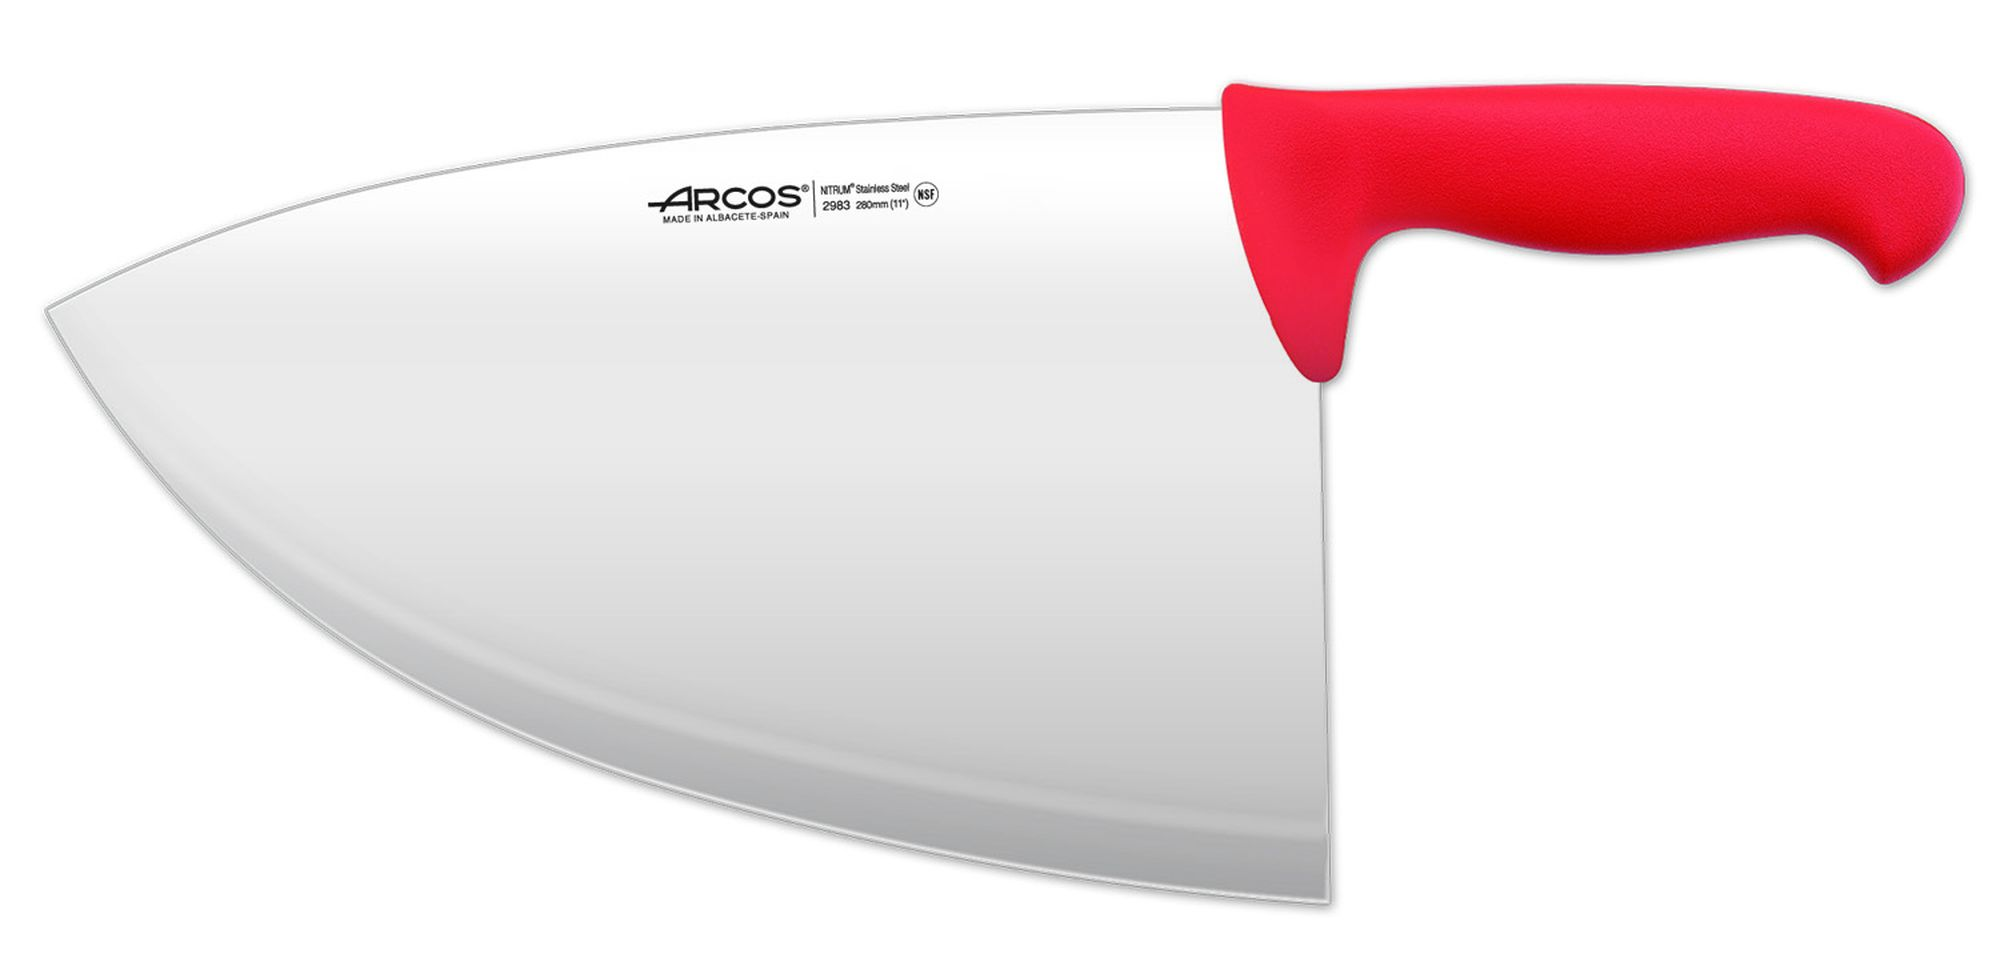 Cleaver Arcos ref.: 298322